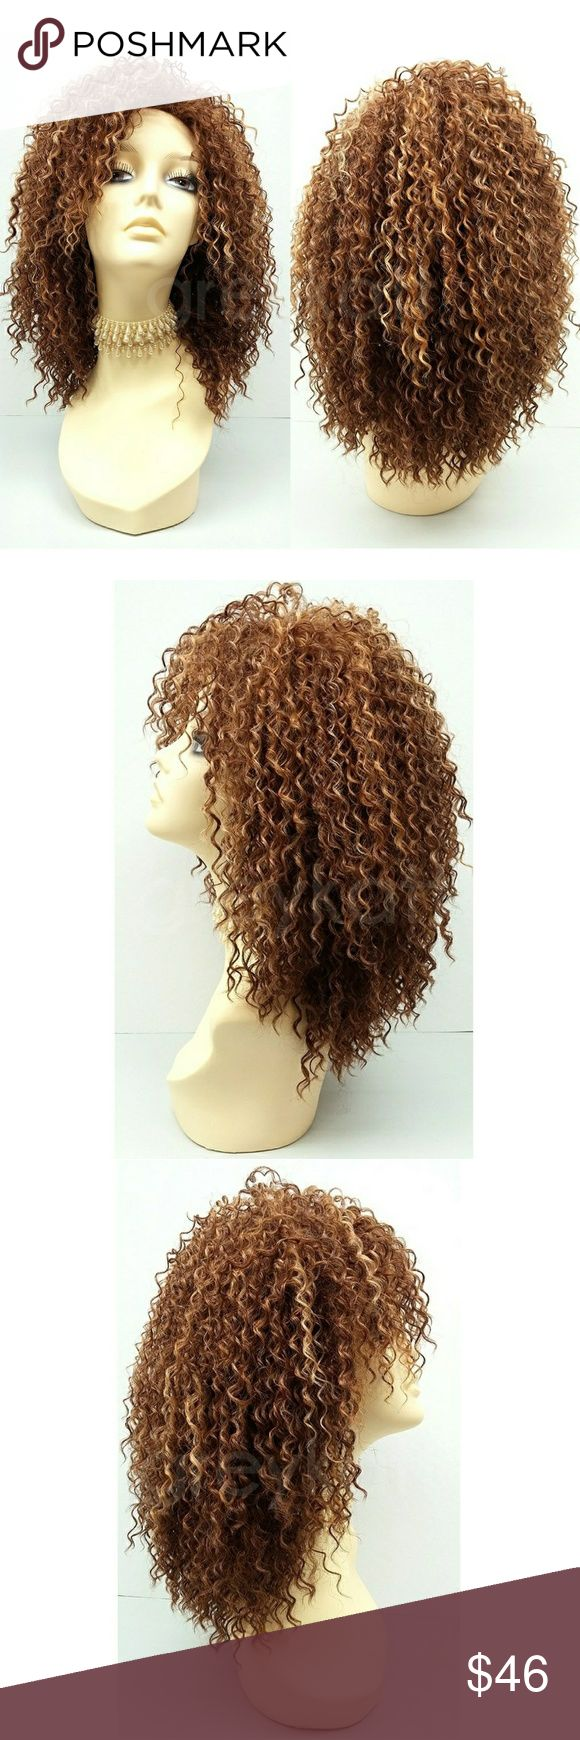 "Mixed highlighted brown long curly wig A gorgeous riot of tight spiral curls that will give you that fresh out of the salon look. Made with heat-resistant premium synthetic fiber which retains its style even after cleaning and can be styled with heating tools.  Color: Mixed Highlighted Brown (3147) Length: 15"" inches Circumference: Default at 21"" with adjustable cap (max 22"") Materials: Heat Resistant Synthetic Wig Fiber  Wig prices are firm. Accessories Hair Accessories"